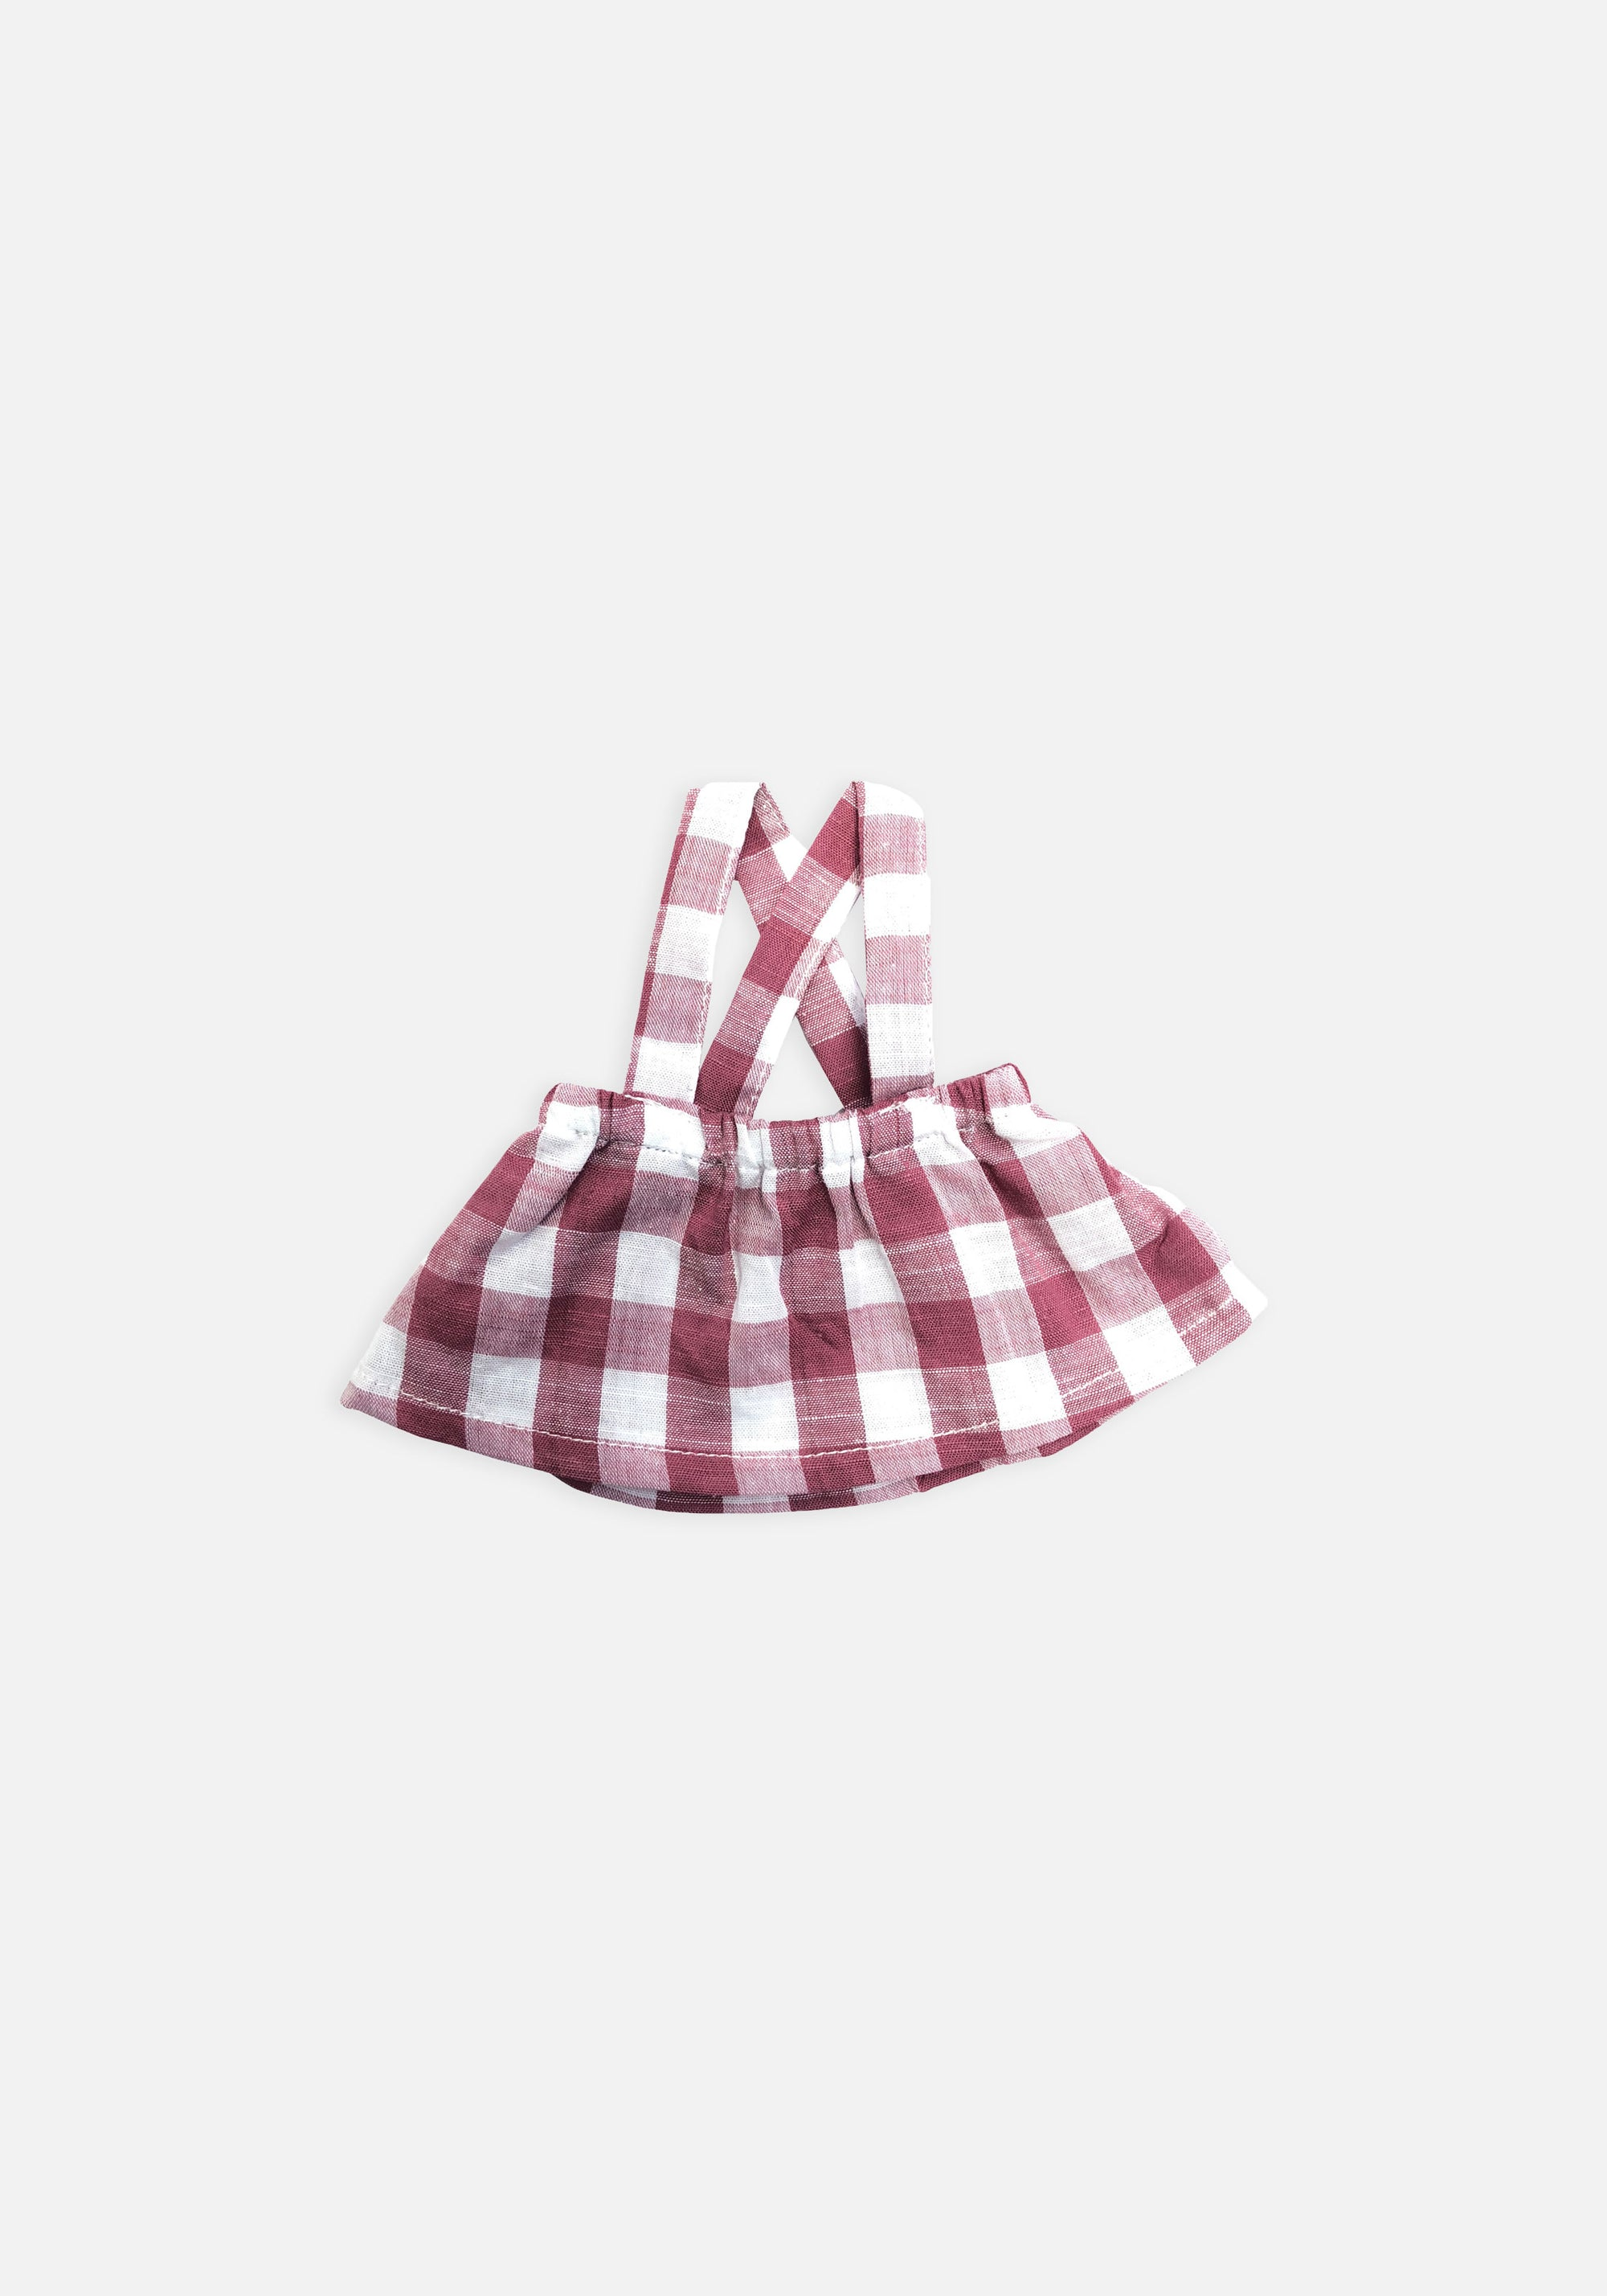 Large Softie Outfit - Pink Gingham Skirt - MIANN & CO